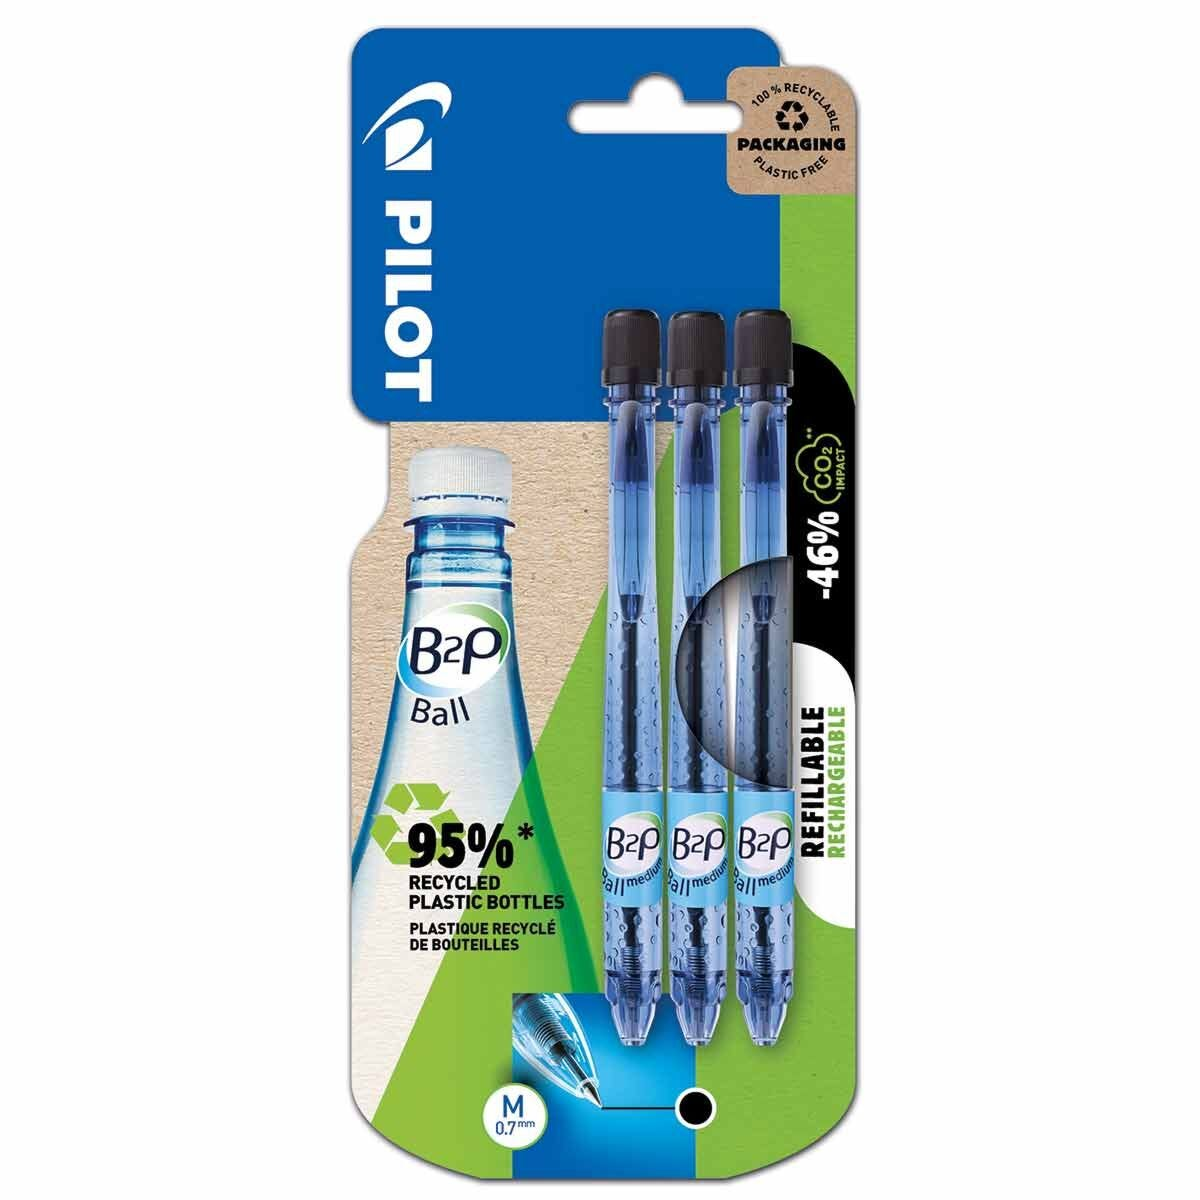 Pilot B2P Recycled Ballpoint Pens Pack of 3 Black